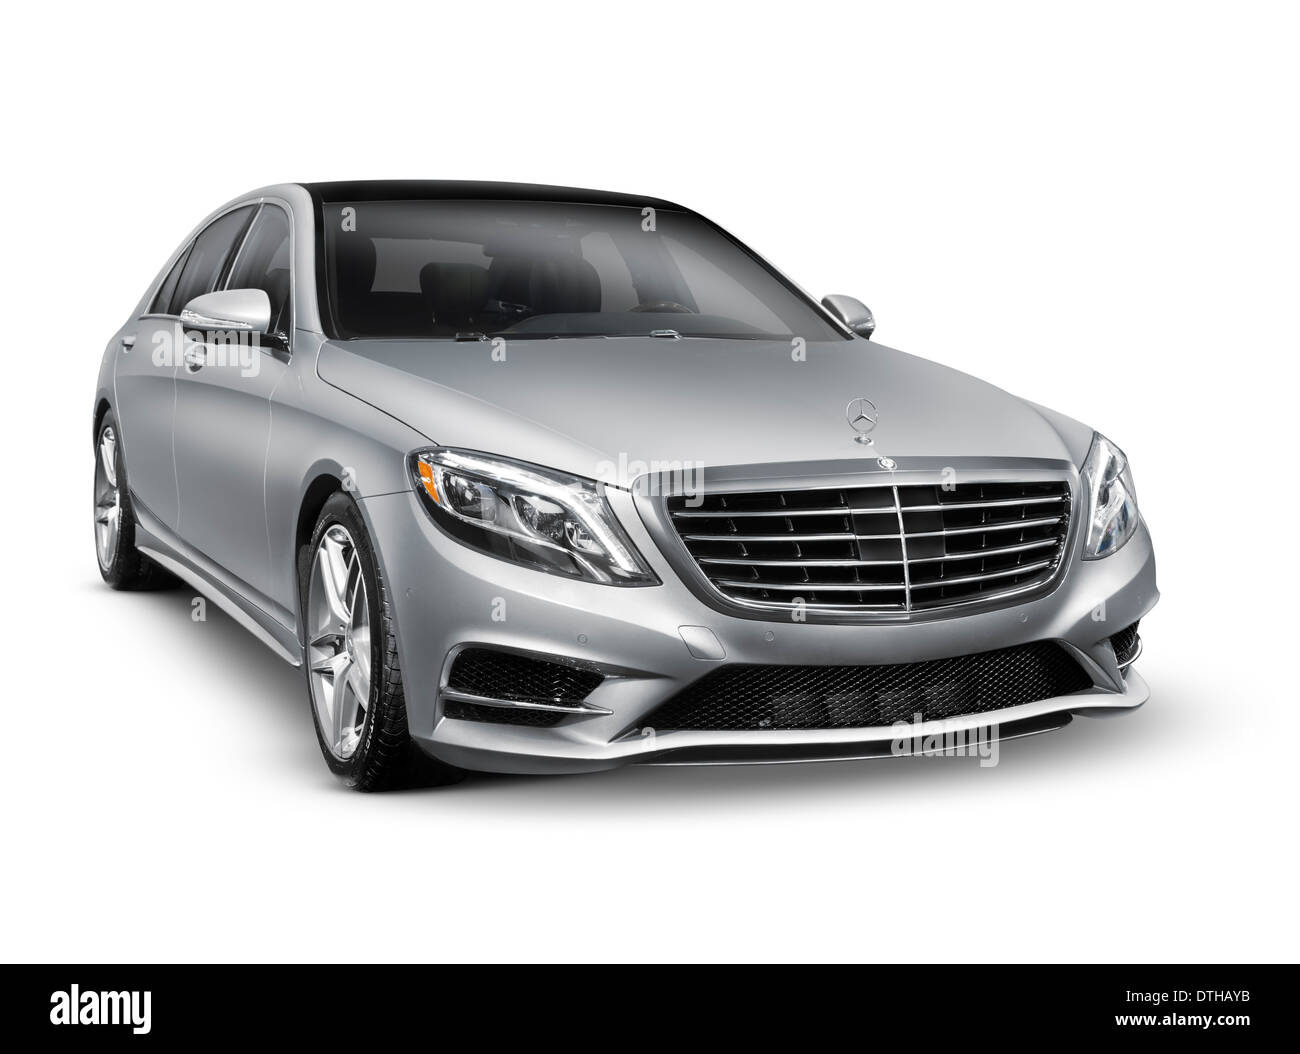 2014 mercedes benz s550 s class luxury sedan isolated car for 2014 mercedes benz s550 4matic